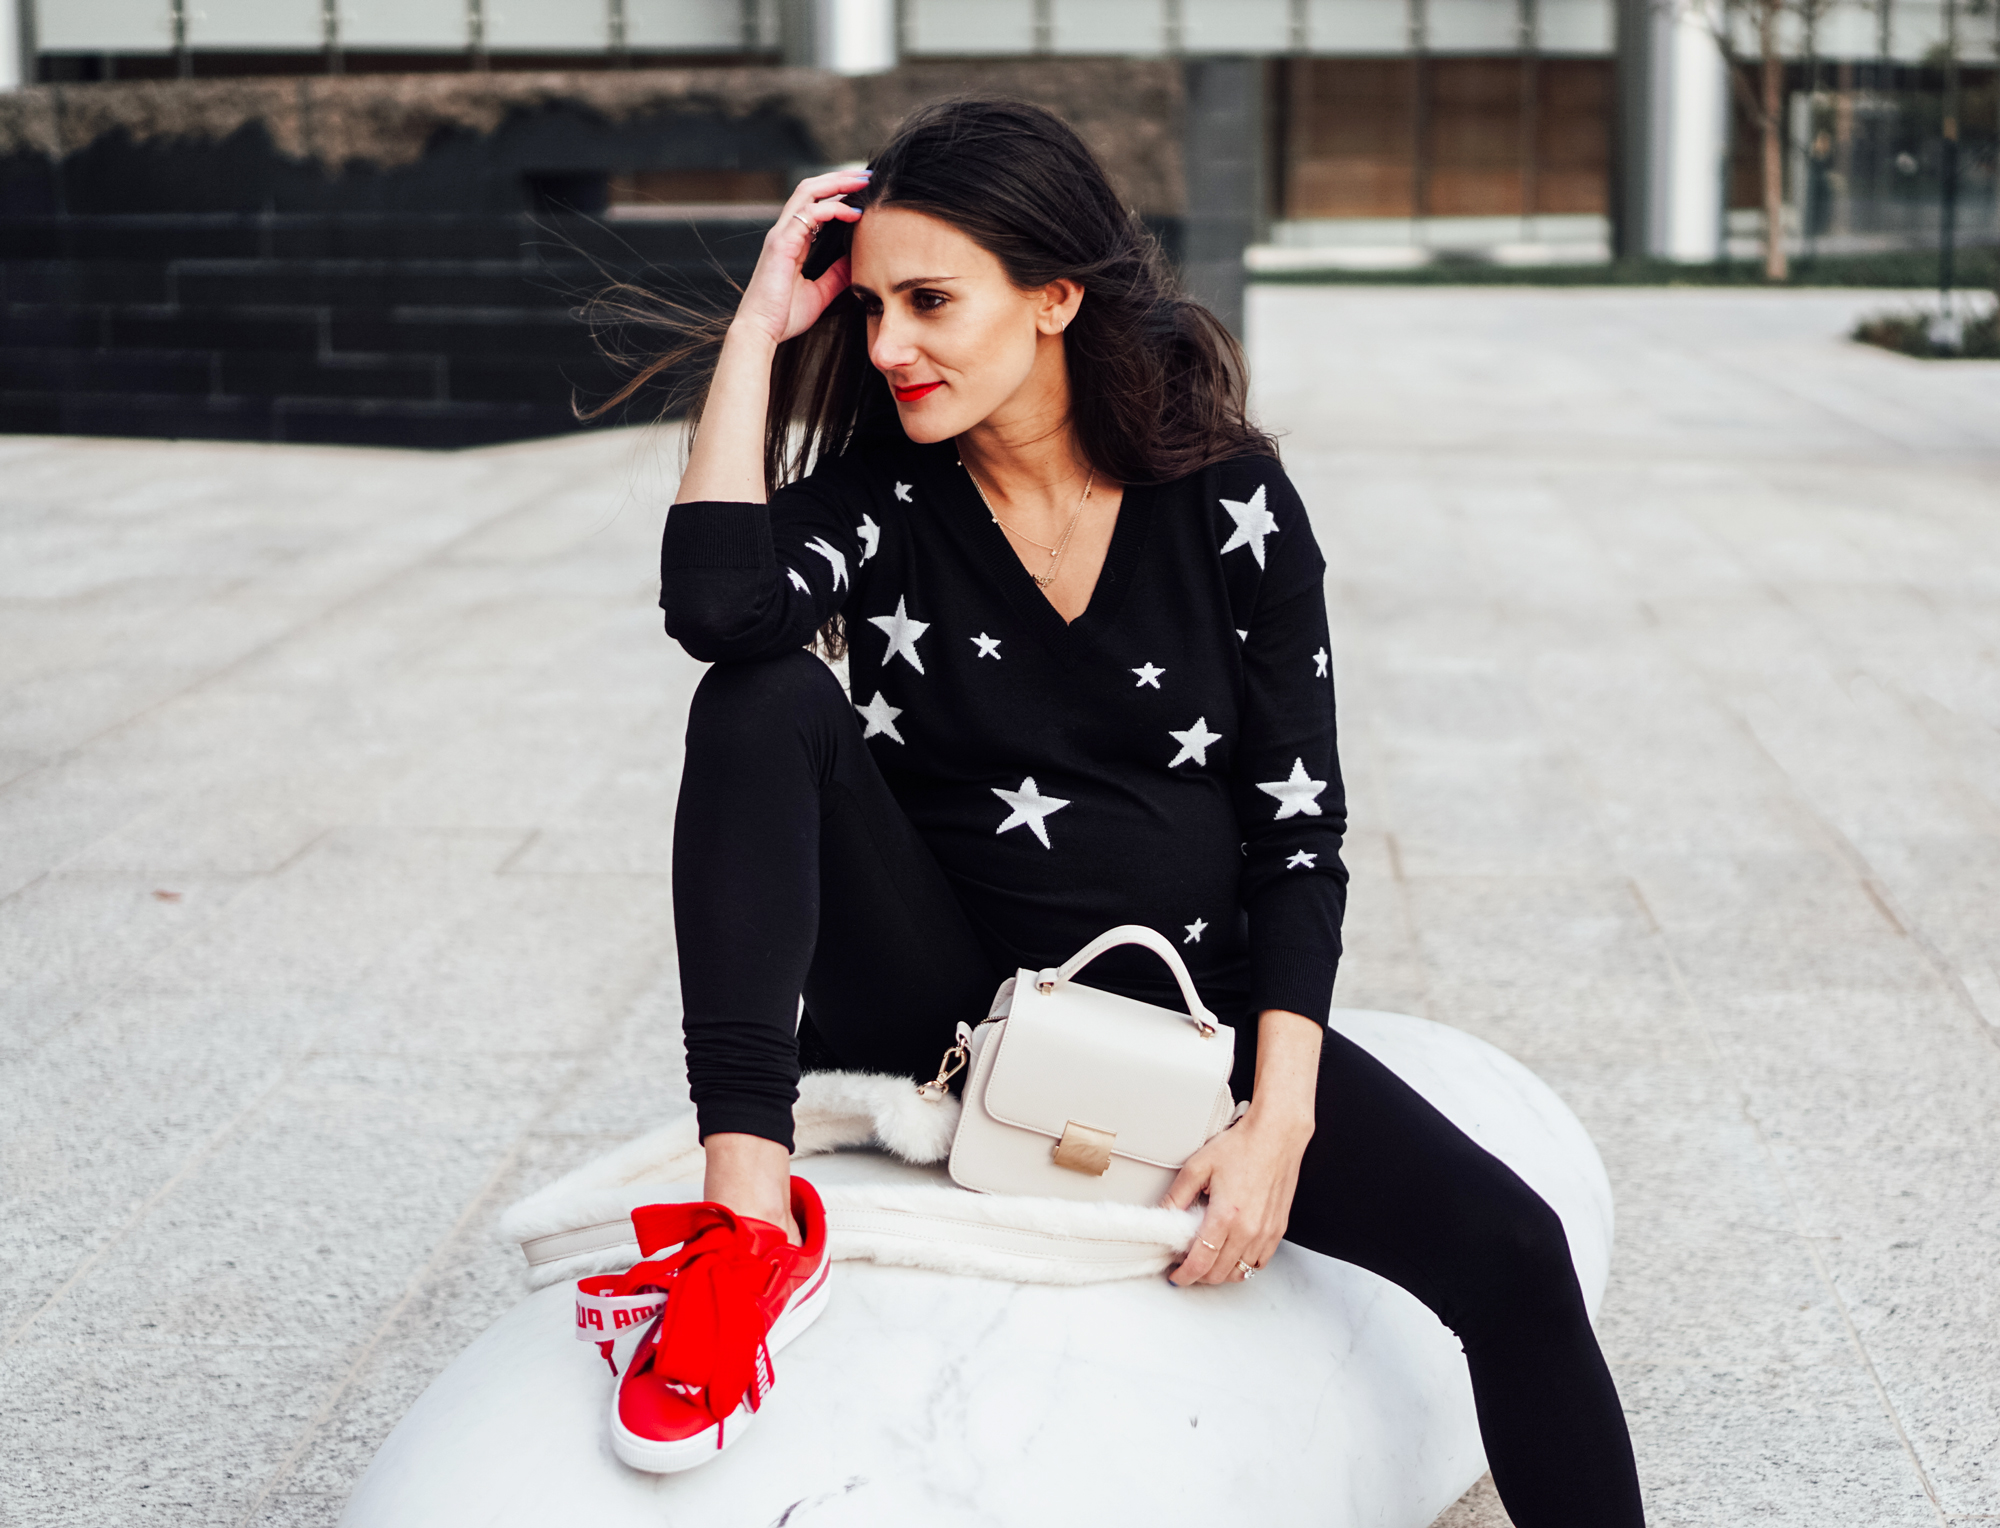 I'm on thedandyliar.com, styling this star intarsia knit sweater and black leggings from Isabella Oliver in my third trimester! The best part? They can be worn after pregnancy, which for me is in less than a week!